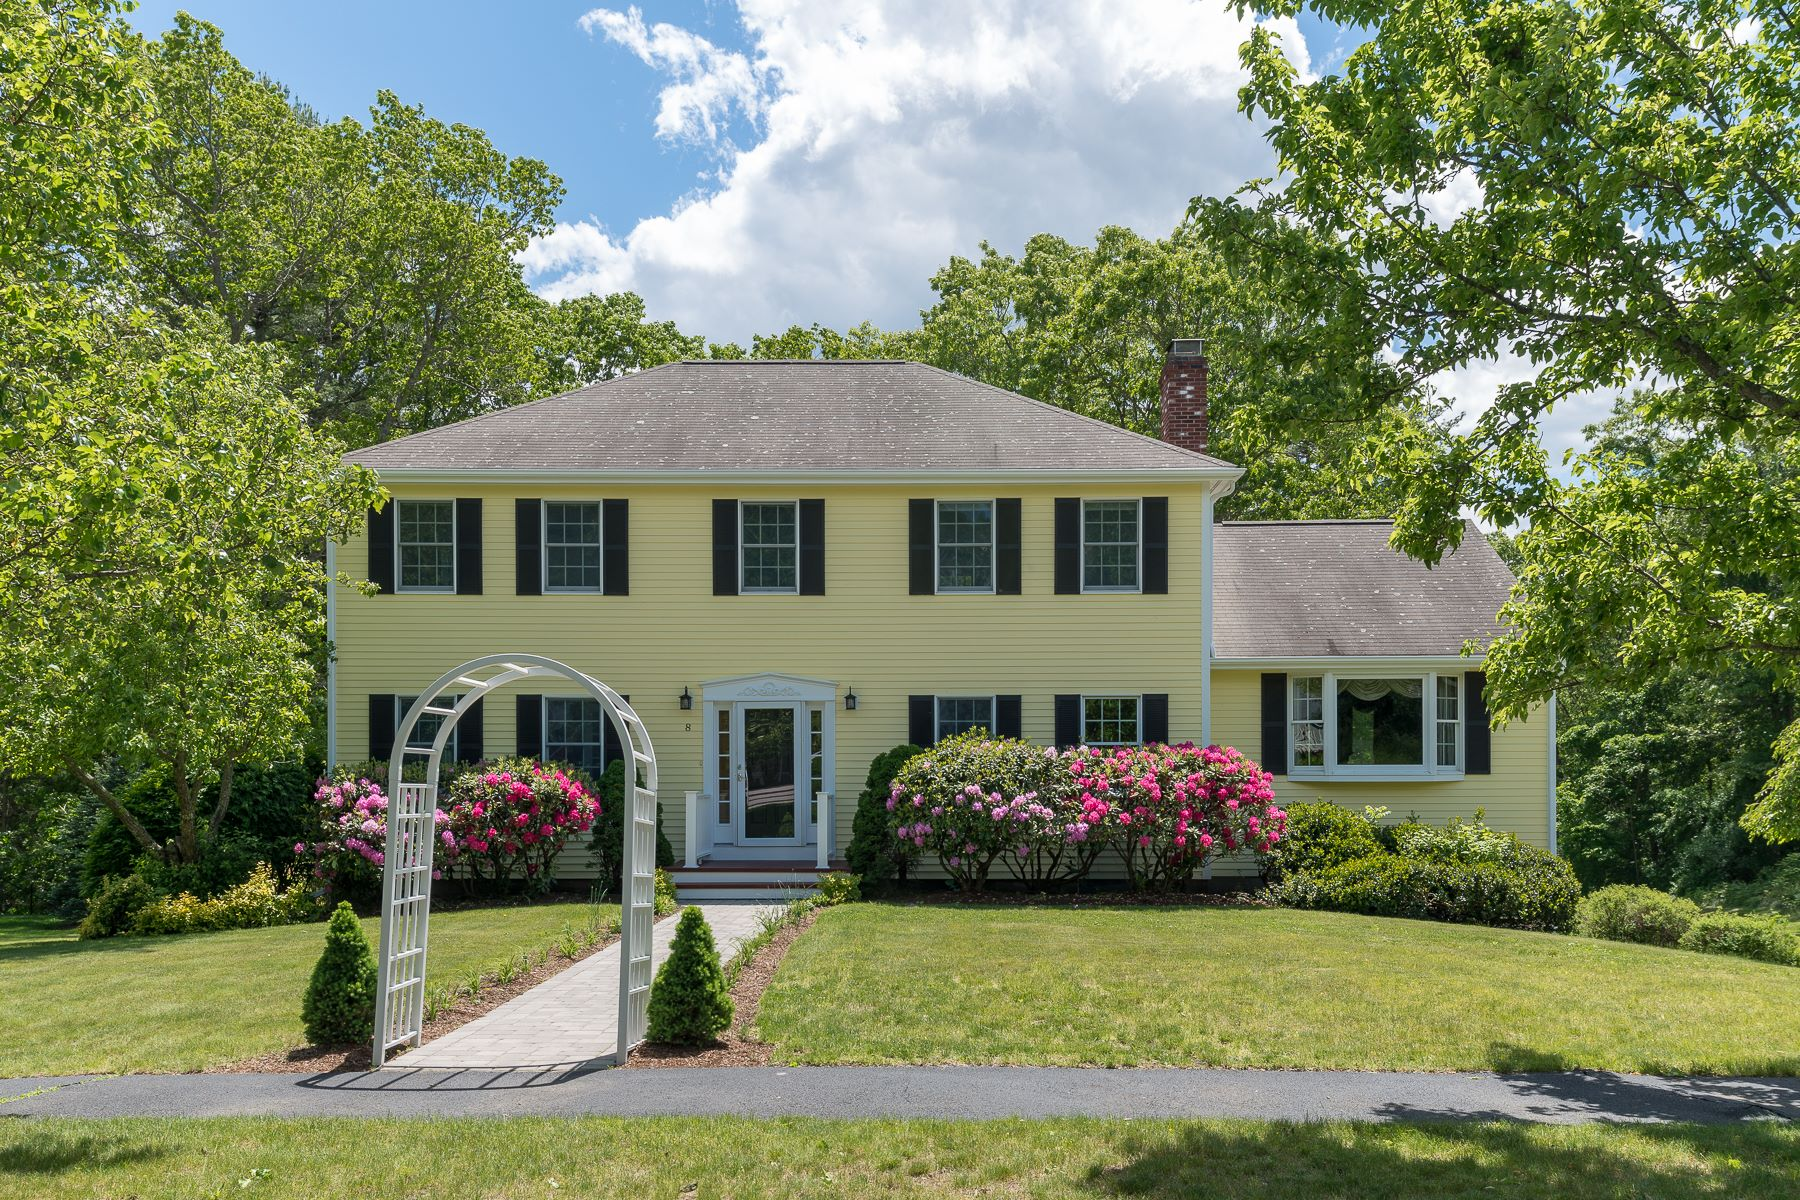 Single Family Home for Sale at Center Entrance Colonial 8 Morgan Drive Danvers, Massachusetts 01923 United States